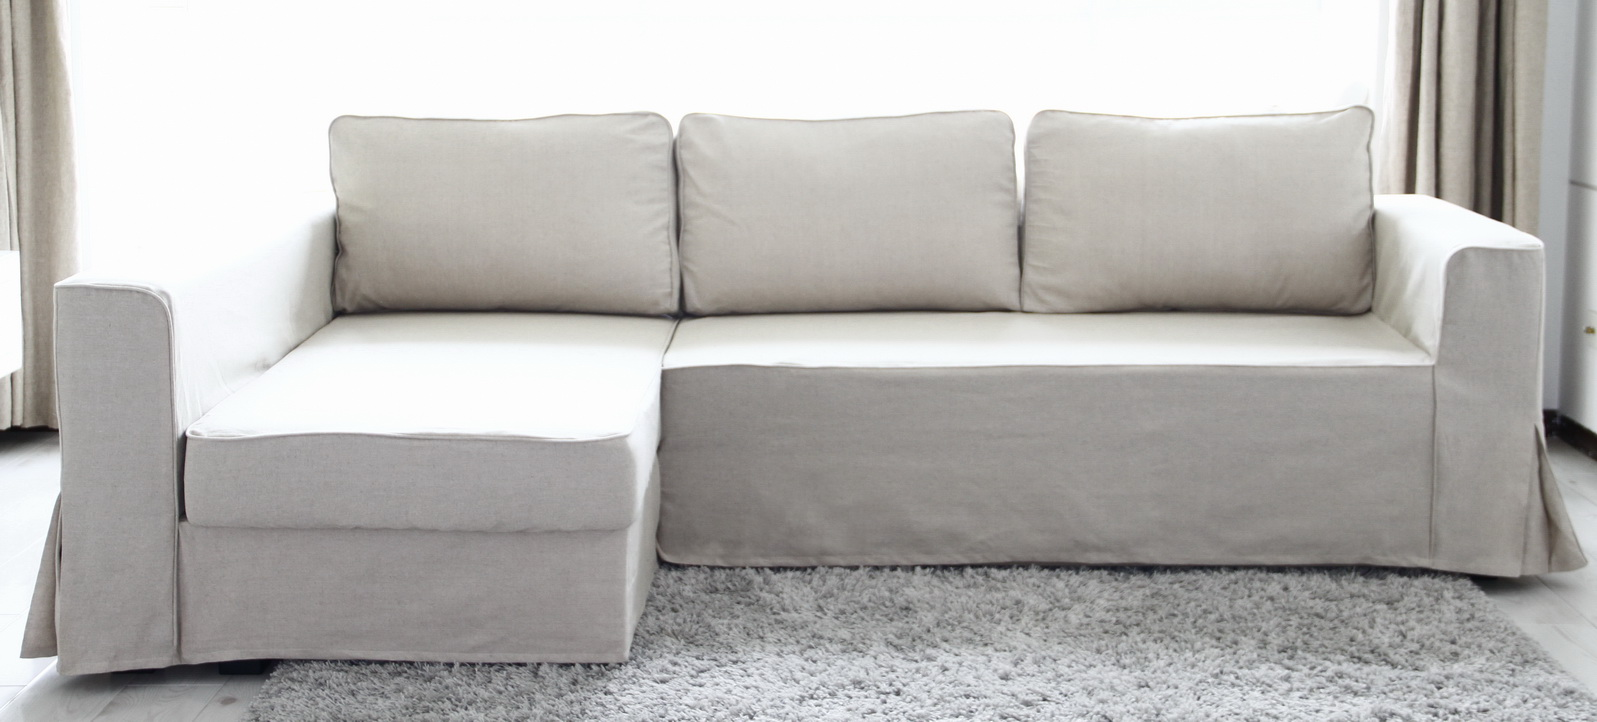 Moheda Sofa Bed | Ikea Corner Sofa Bed | Ikea Pull Out Couch